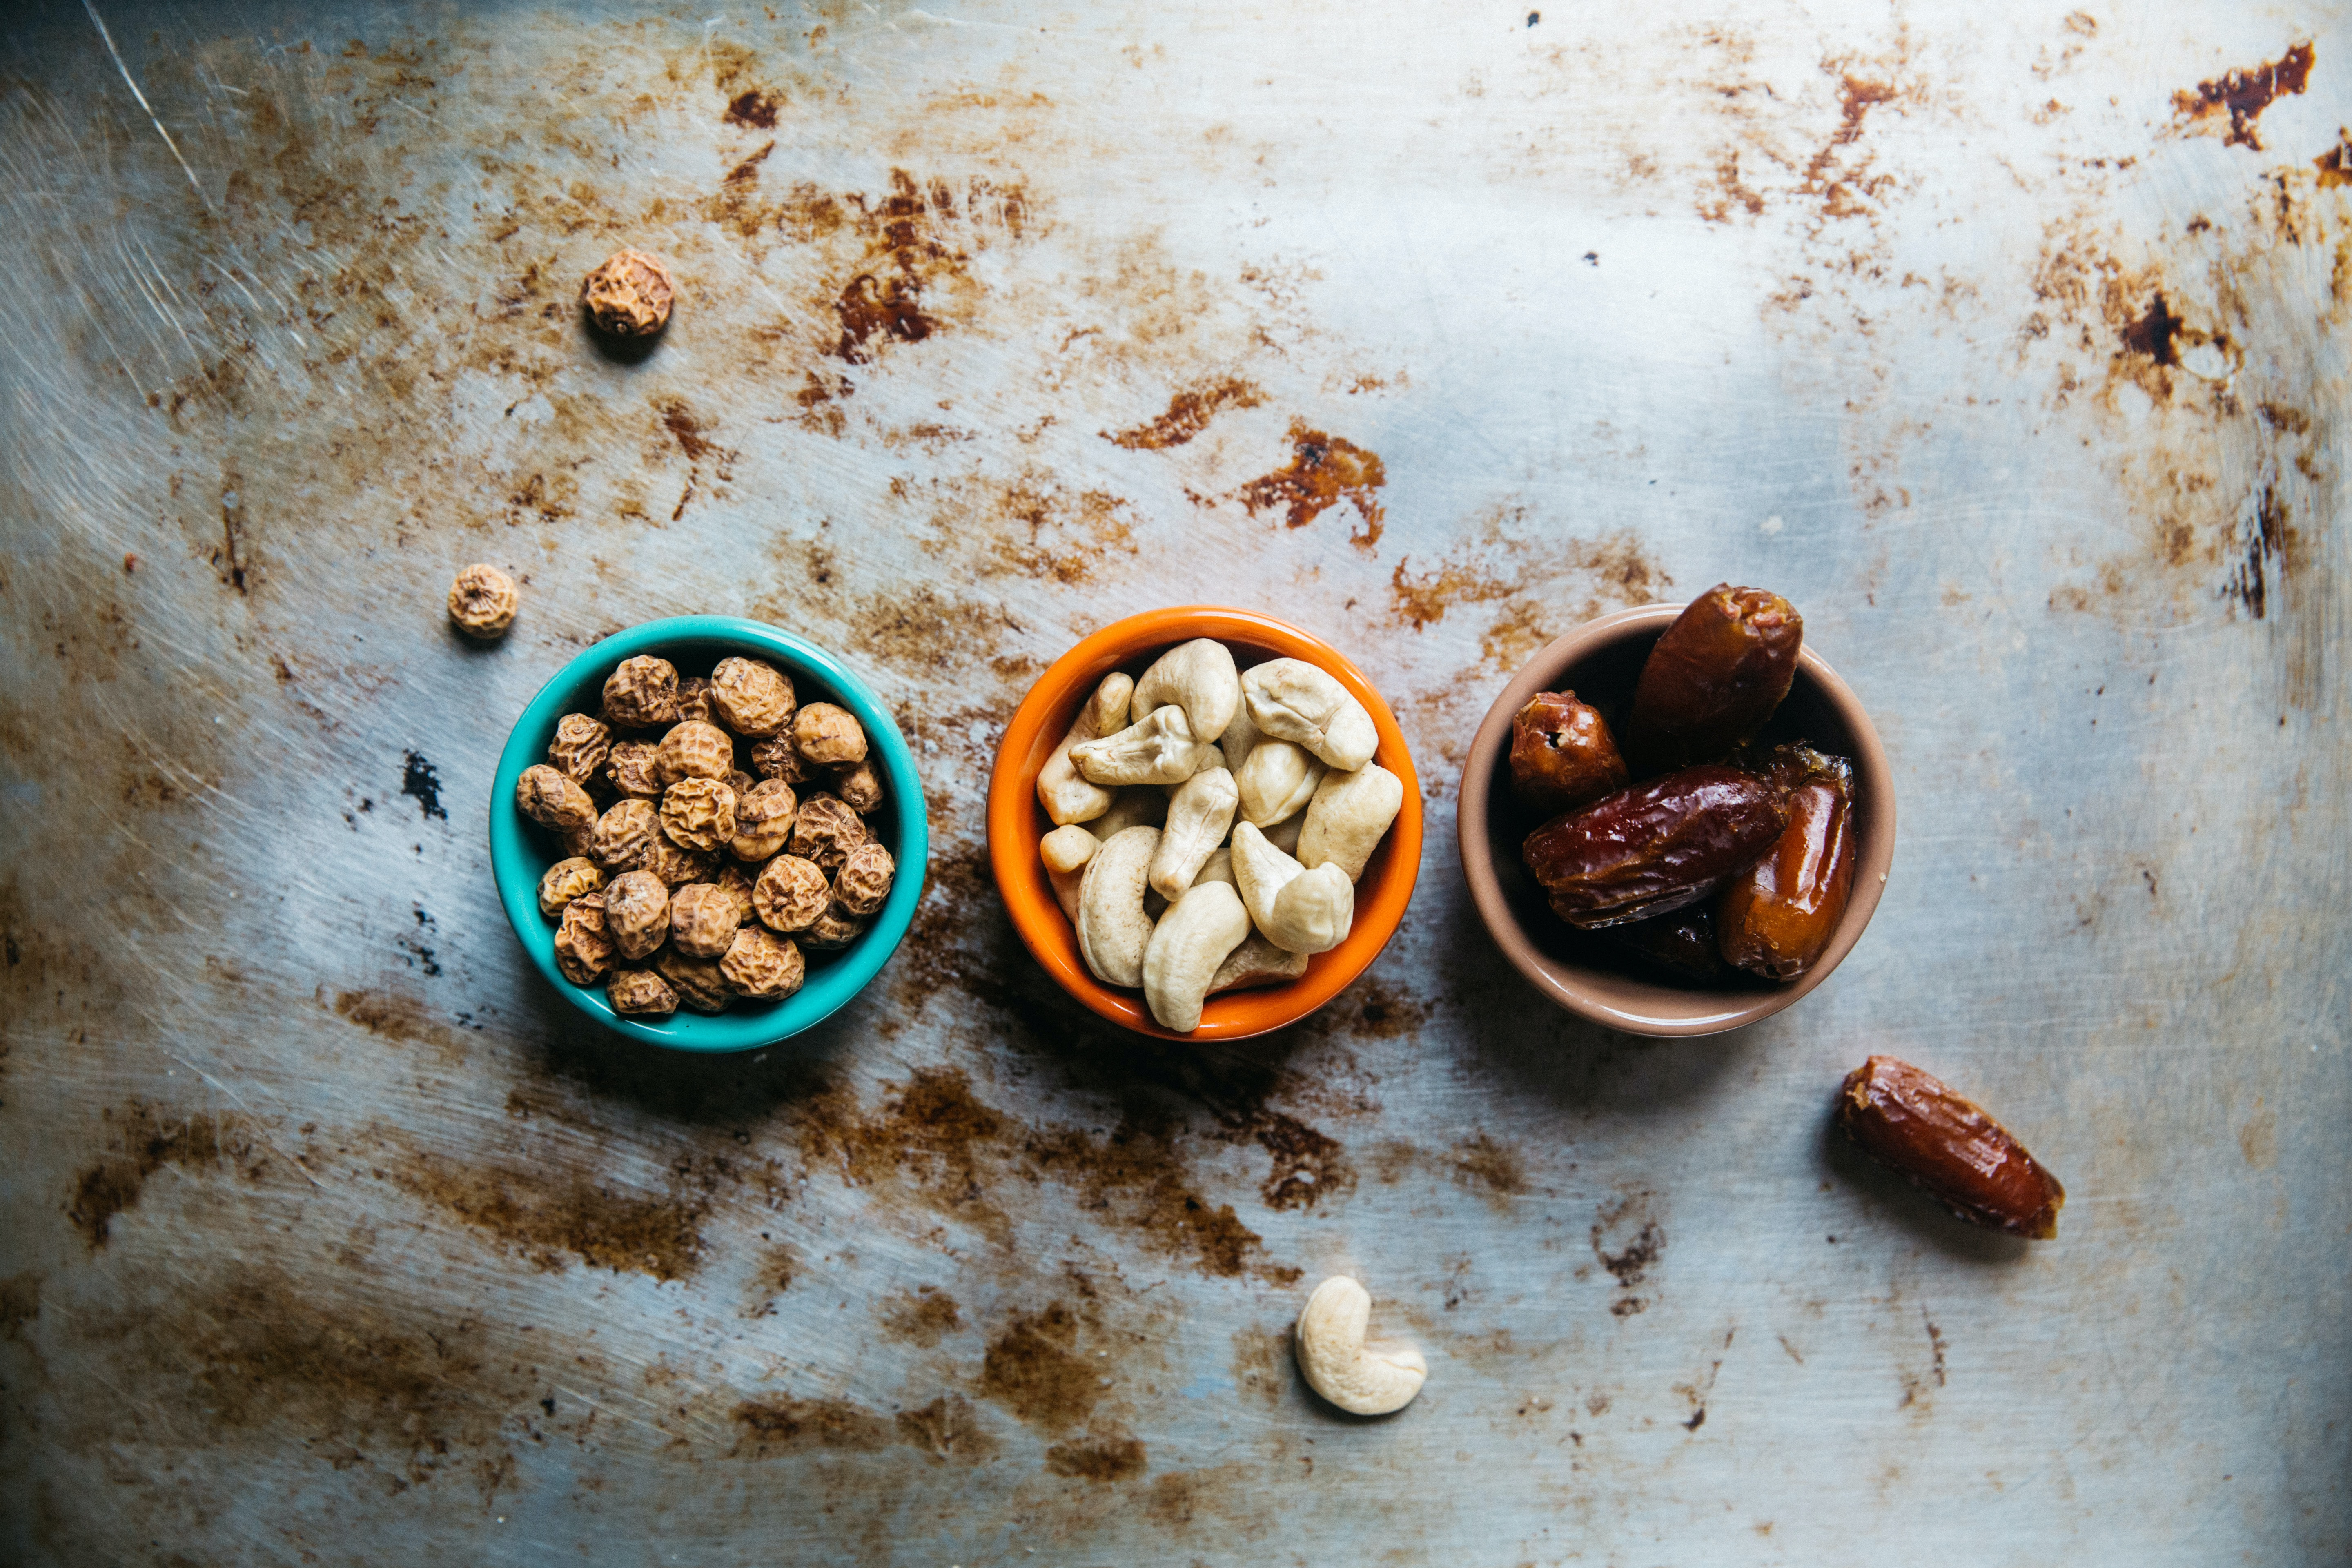 Small bowls of nuts, cashews, and dates for snack